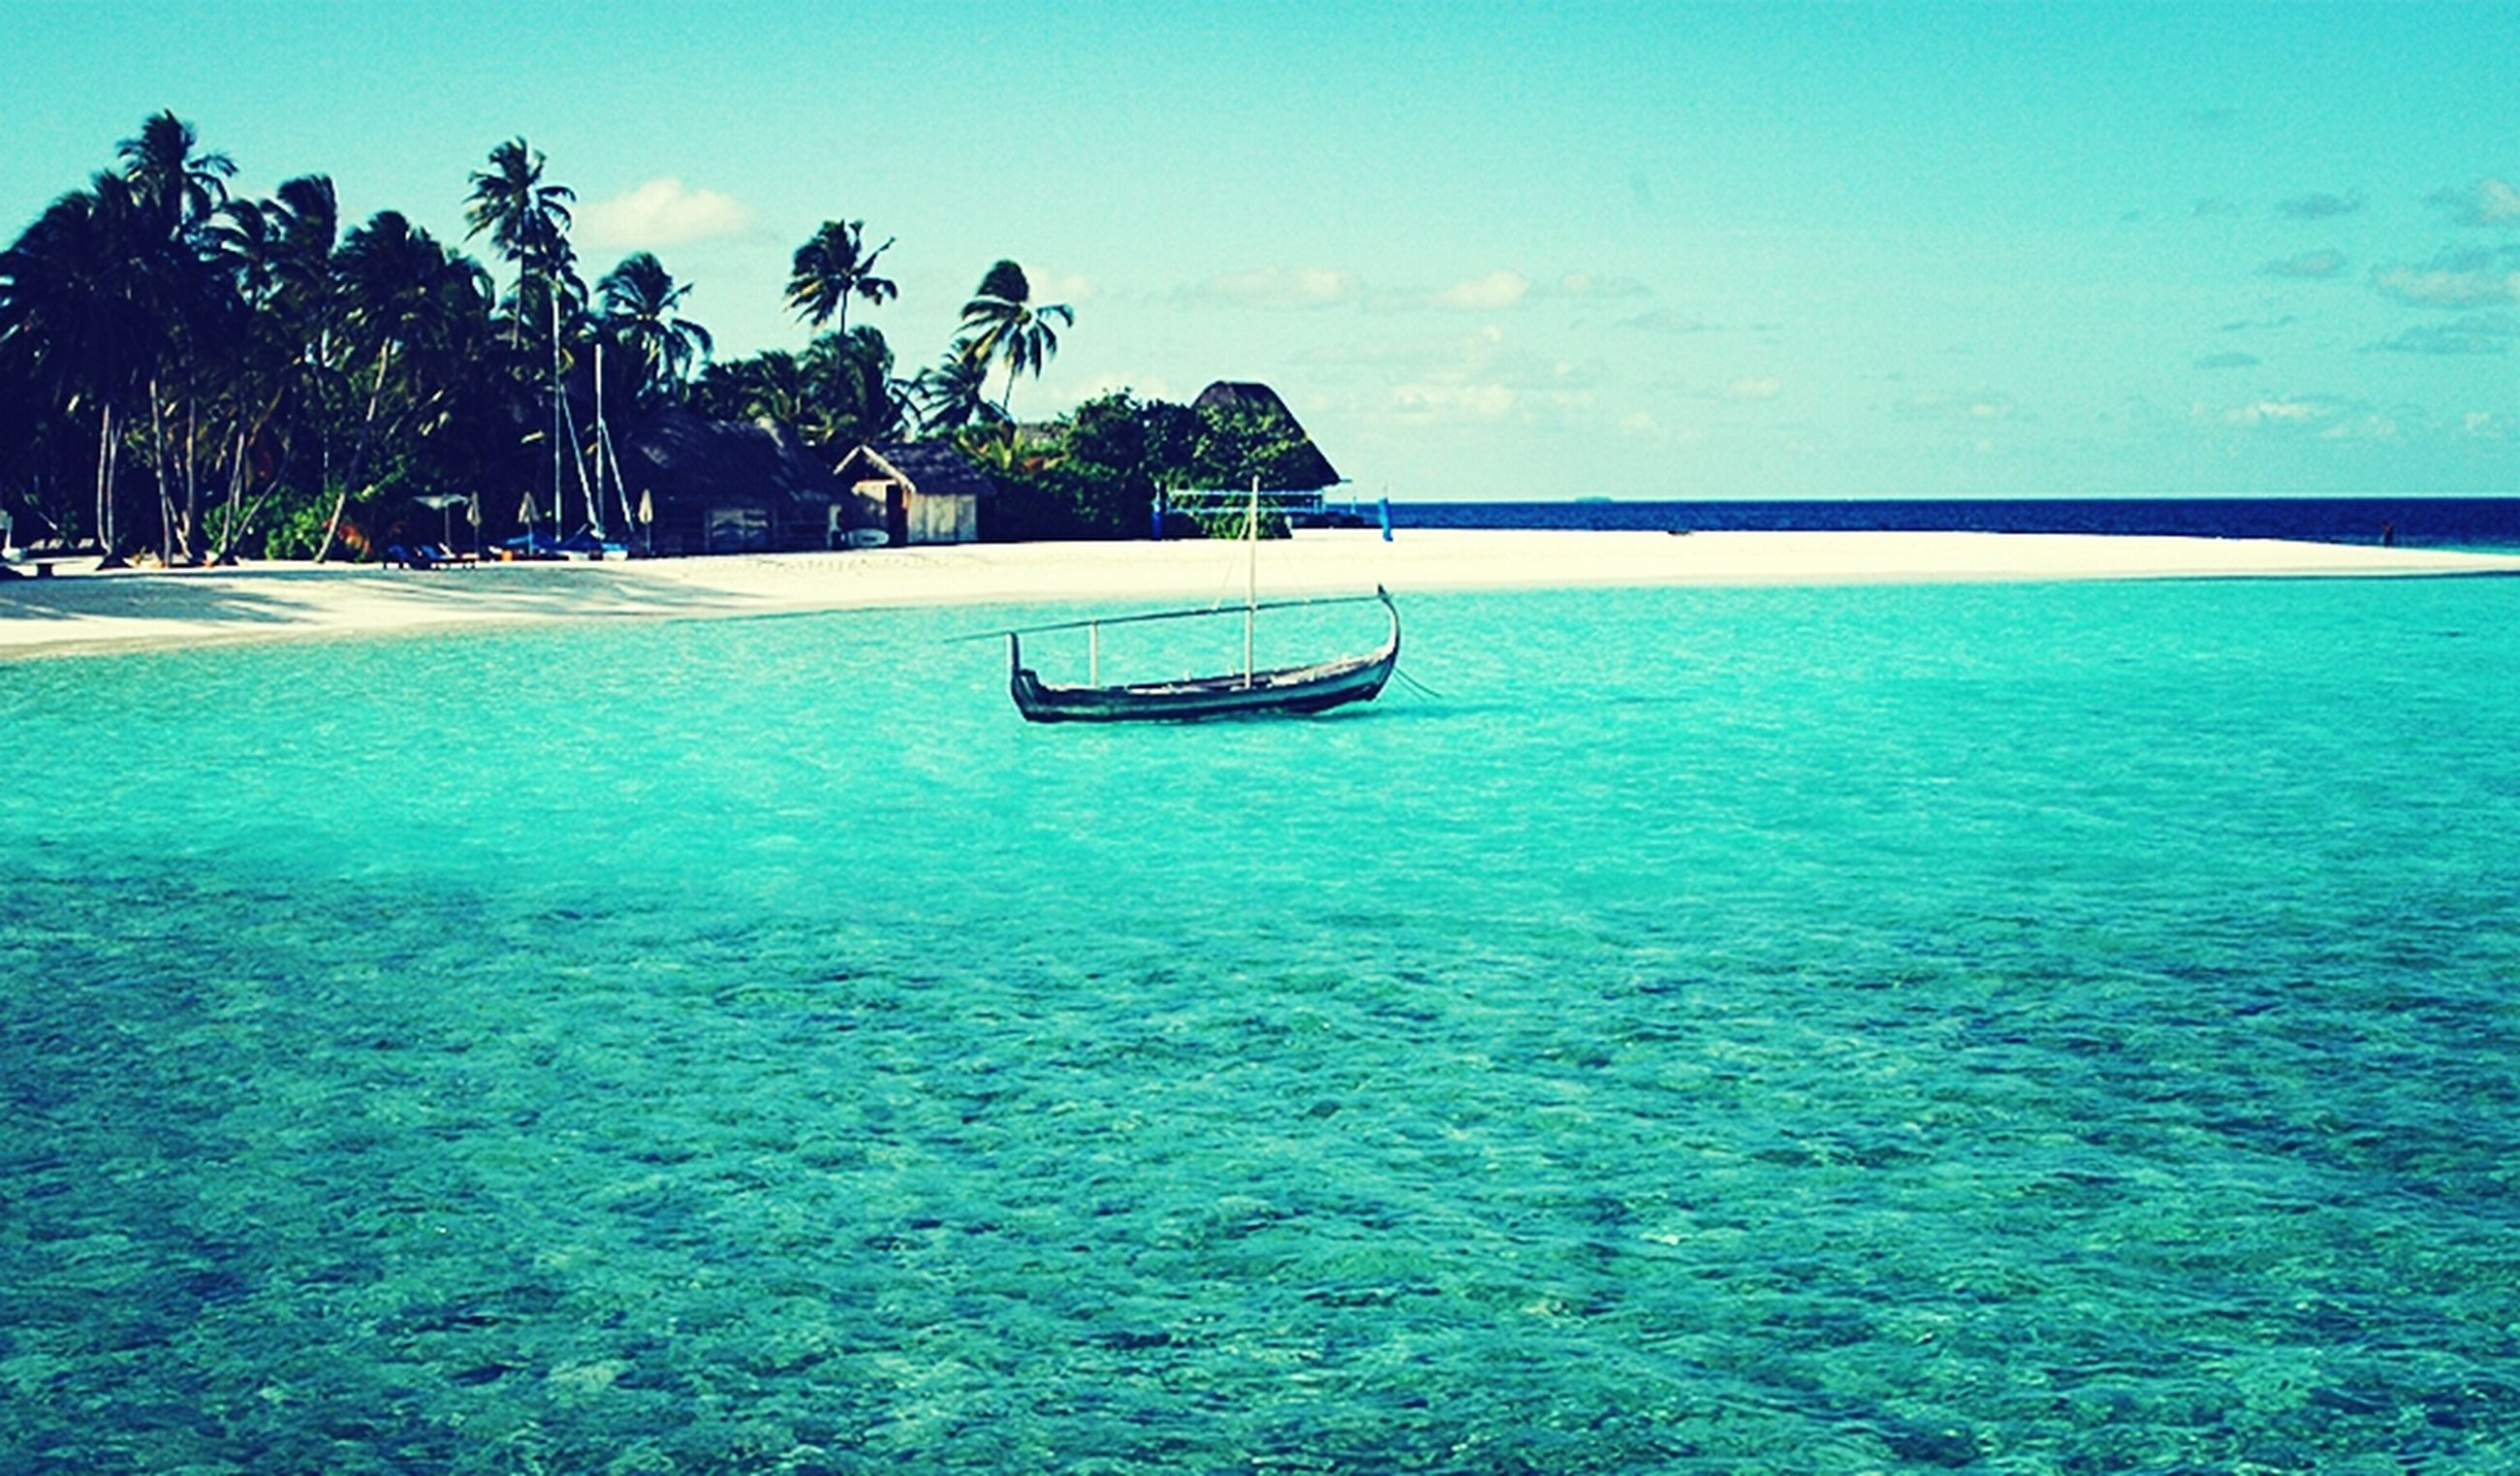 sea, water, tree, horizon over water, palm tree, blue, tranquility, beach, tranquil scene, sky, scenics, beauty in nature, nature, shore, idyllic, sand, swimming pool, nautical vessel, vacations, waterfront